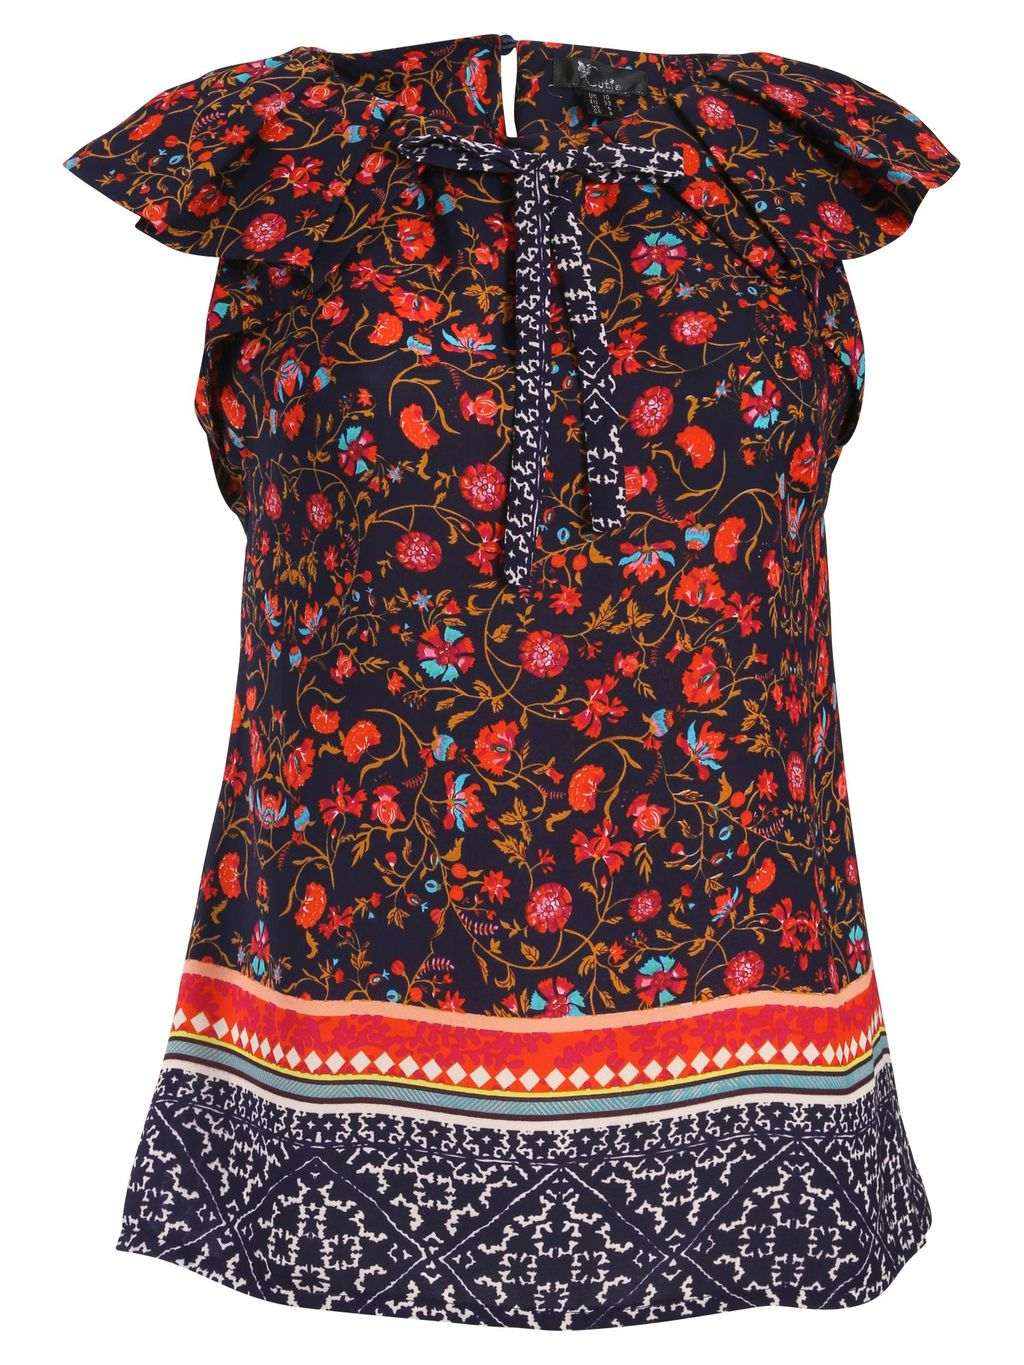 Sleeveless Floral Top, Navy - neckline: round neck; sleeve style: capped; secondary colour: true red; predominant colour: navy; occasions: casual; length: standard; style: top; fibres: polyester/polyamide - 100%; fit: straight cut; sleeve length: short sleeve; pattern type: fabric; pattern: patterned/print; texture group: other - light to midweight; trends: artesanal details; season: a/w 2014; pattern size: big & busy (top); embellishment location: bust